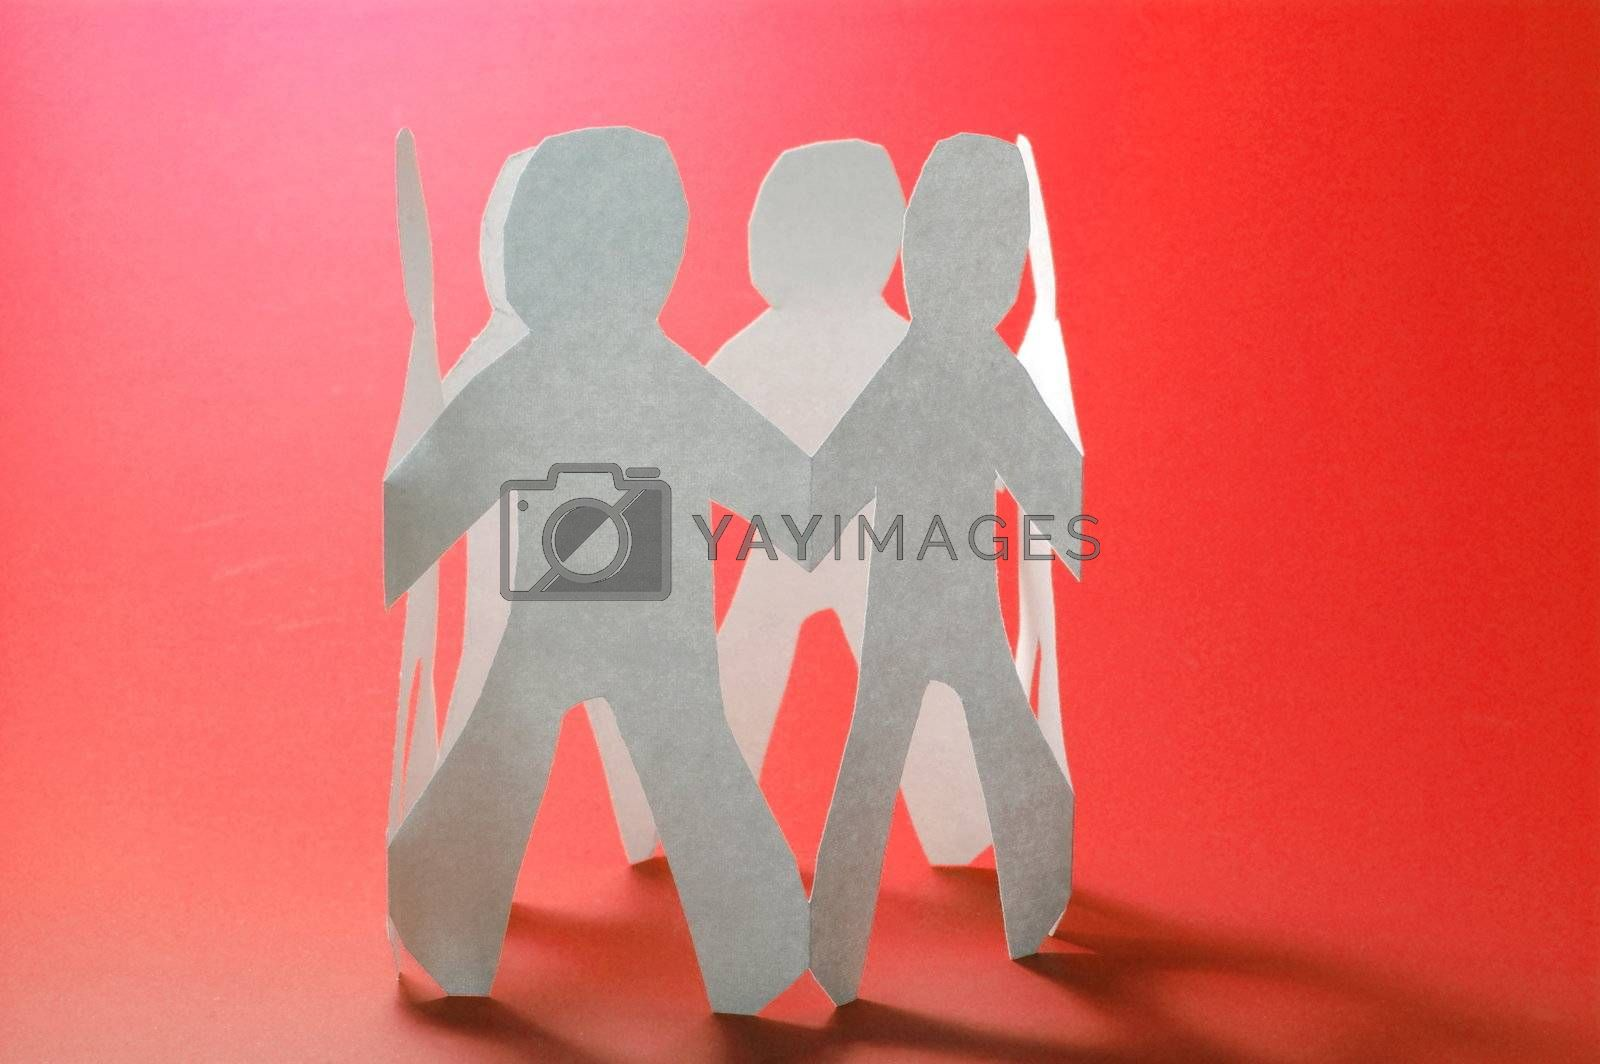 teamwork love help and family concept with paper man